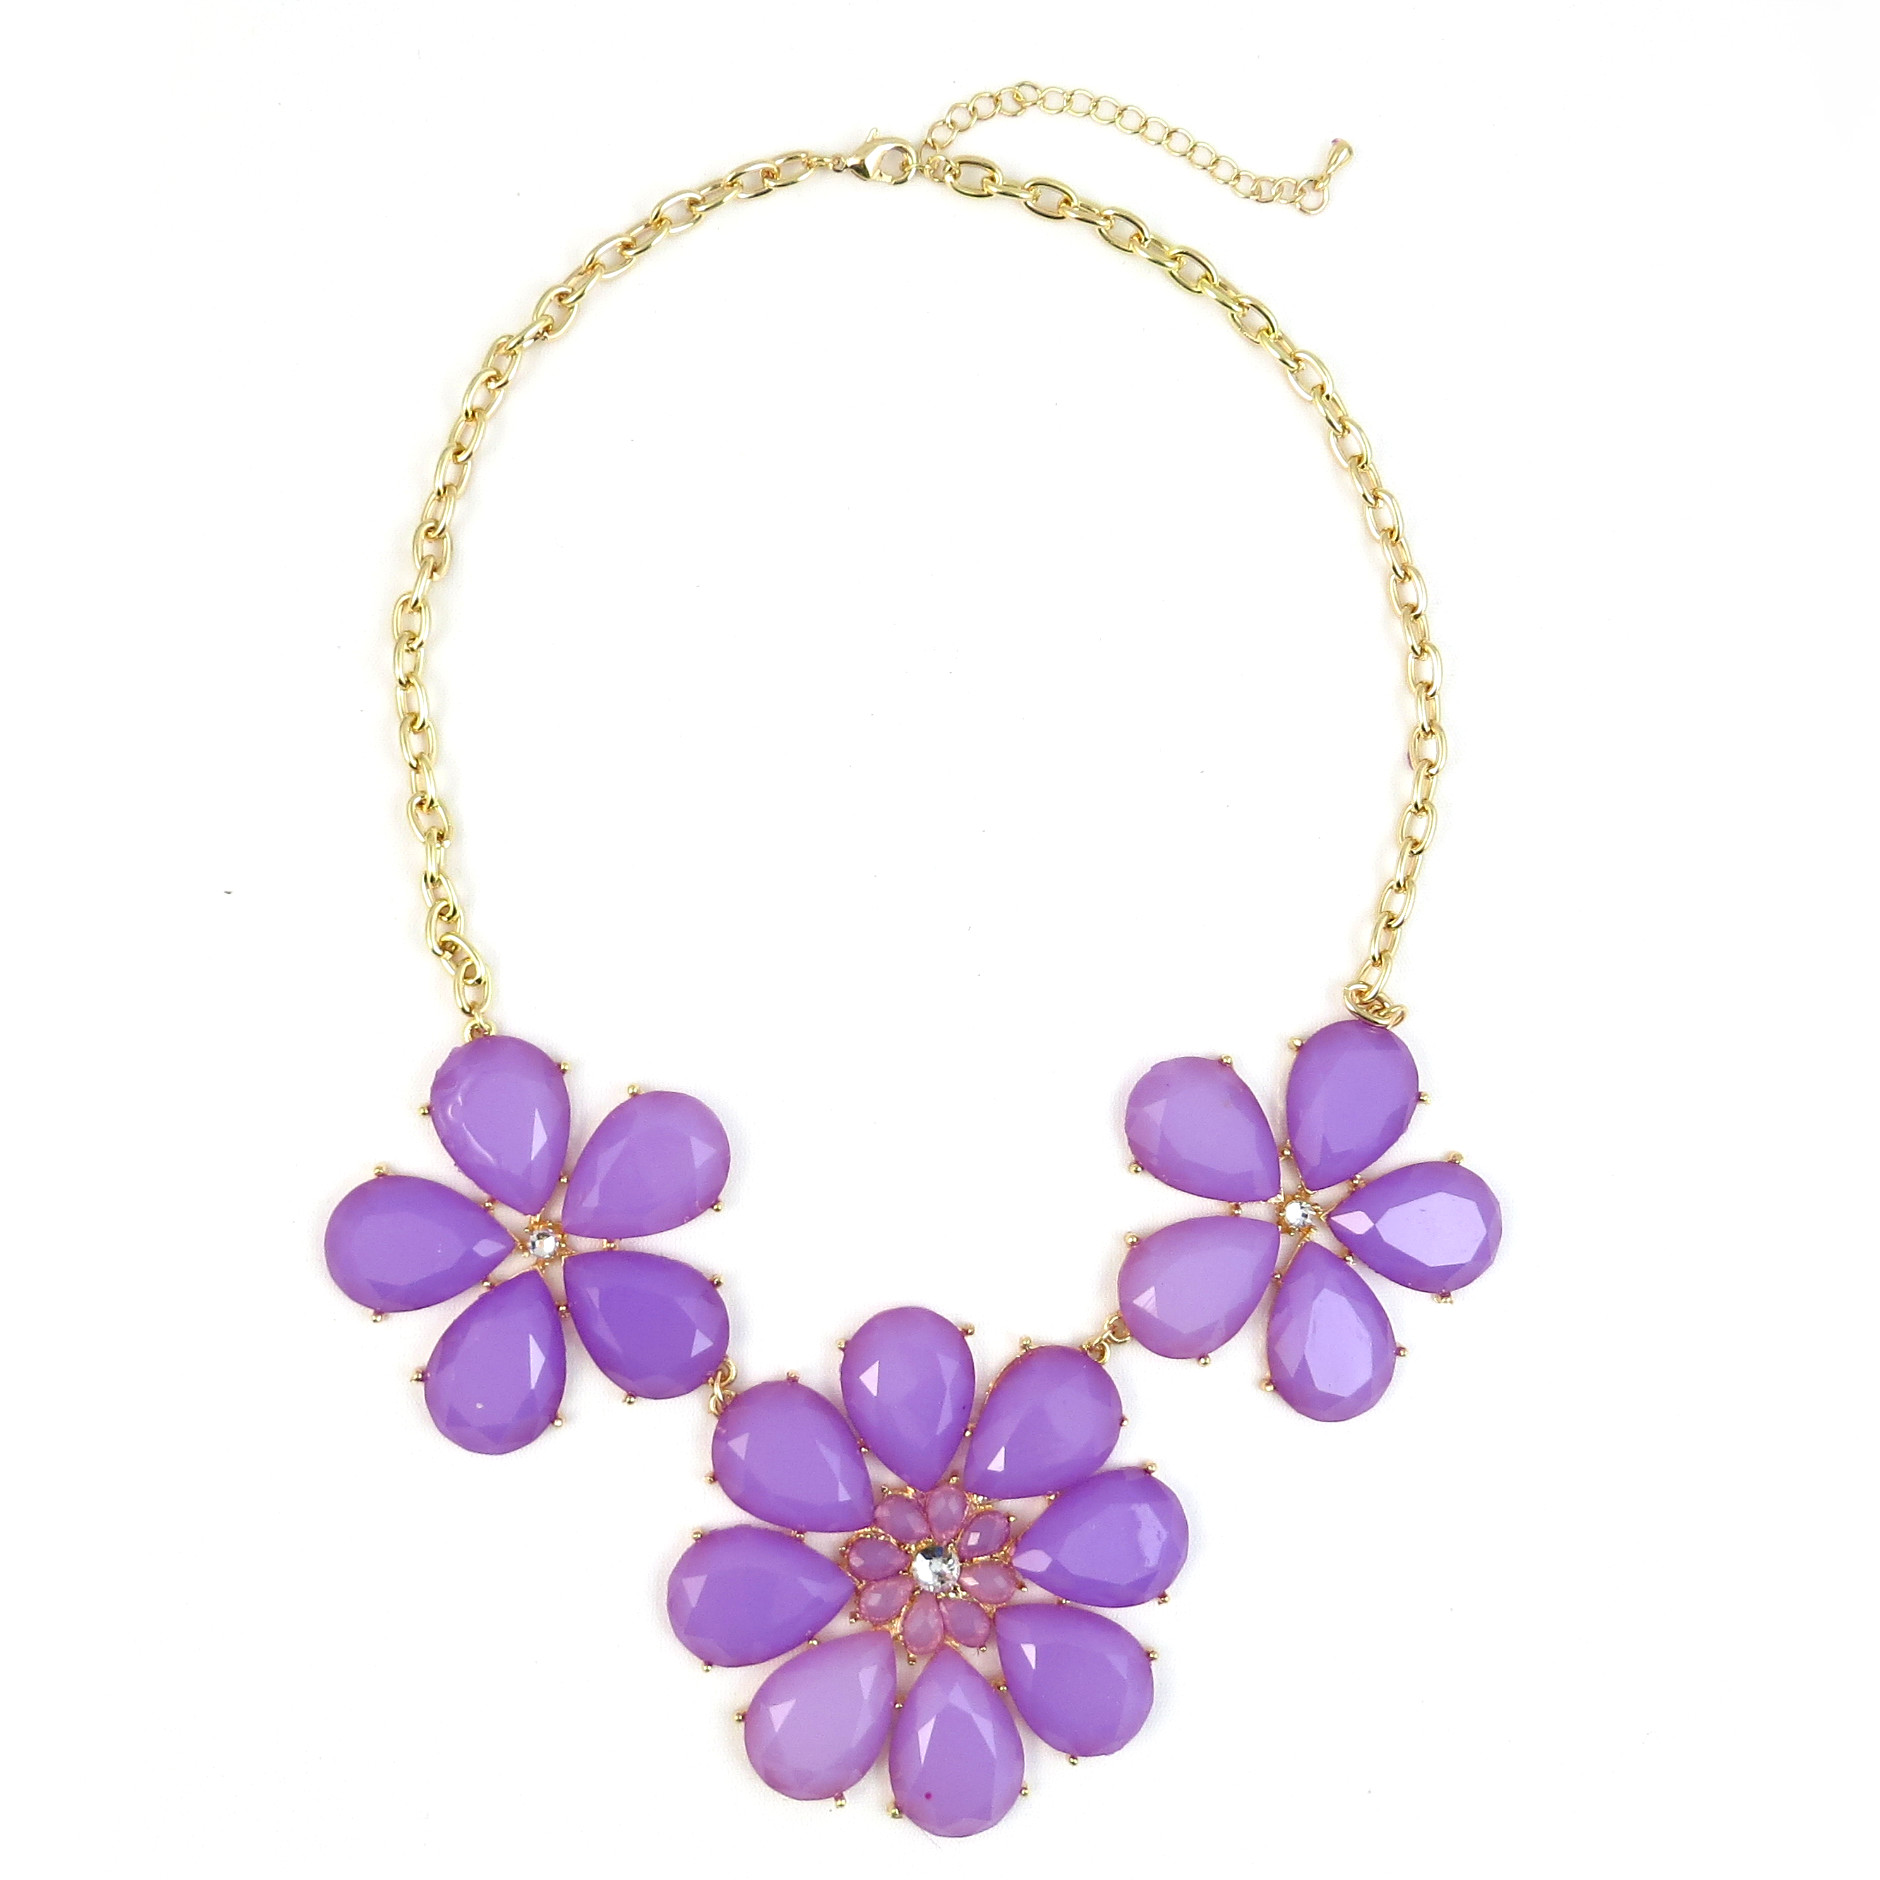 Lavender Resin Stone Floral Statement Necklace